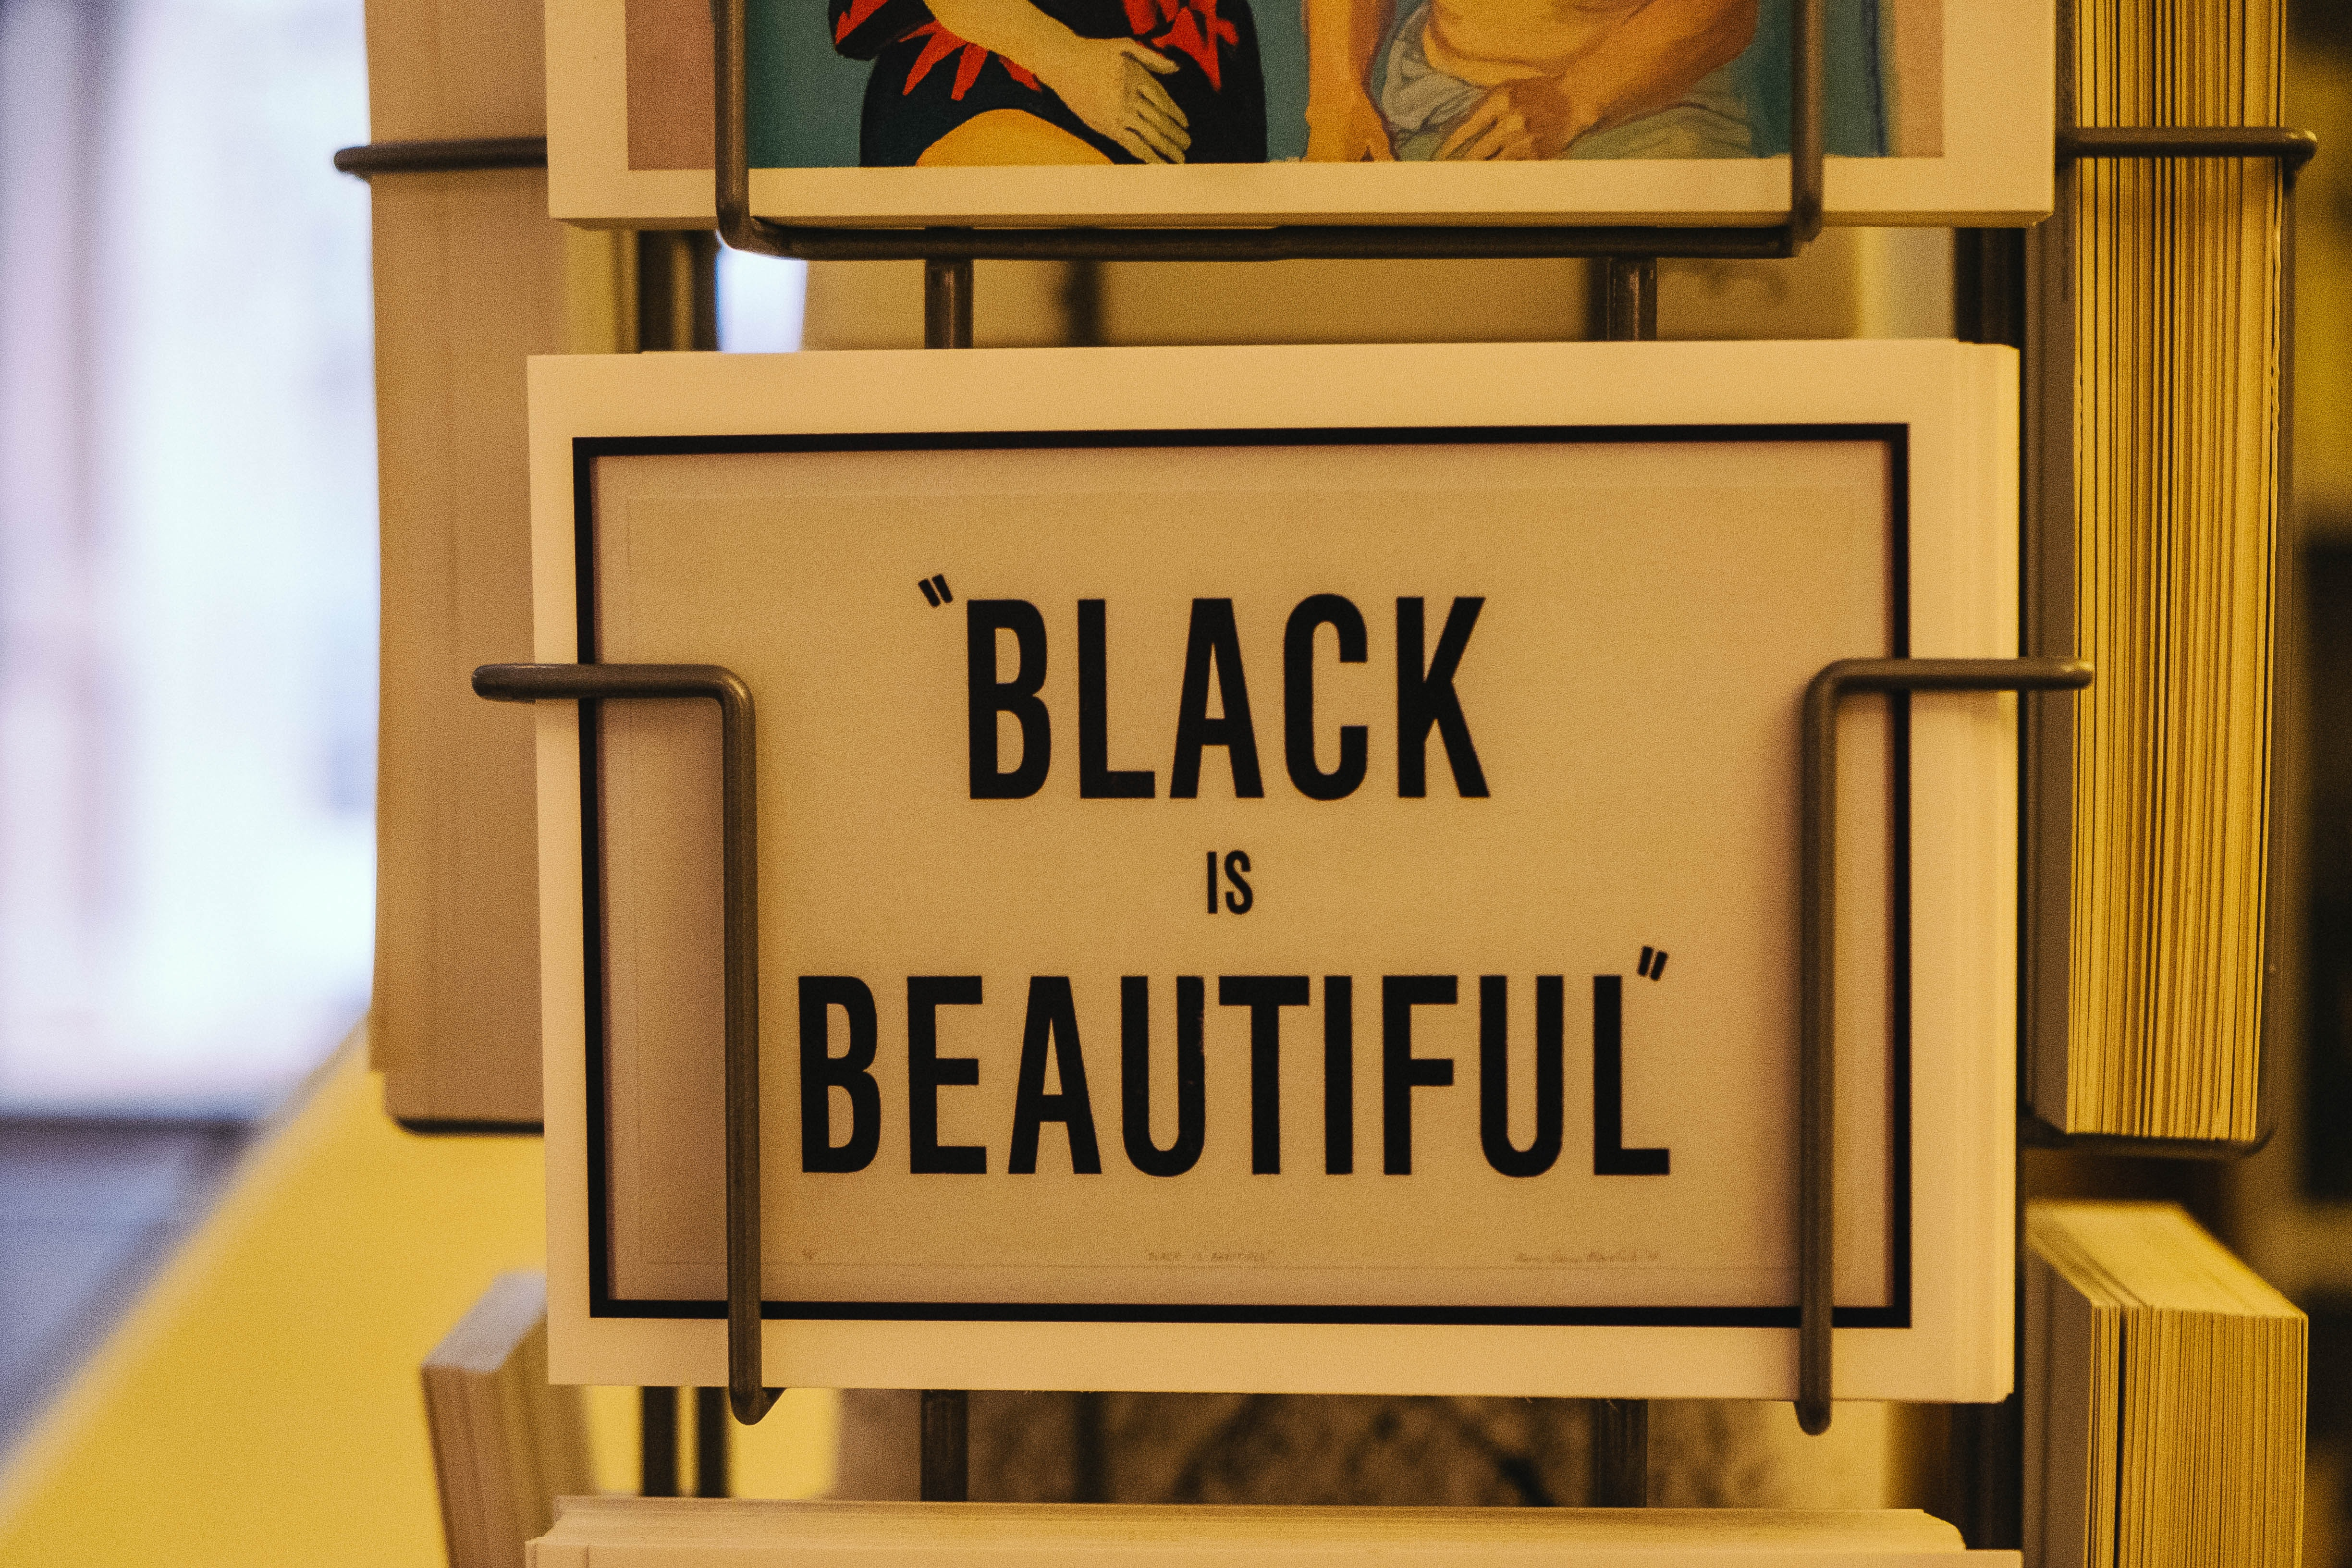 Black is Beautiful card on rack